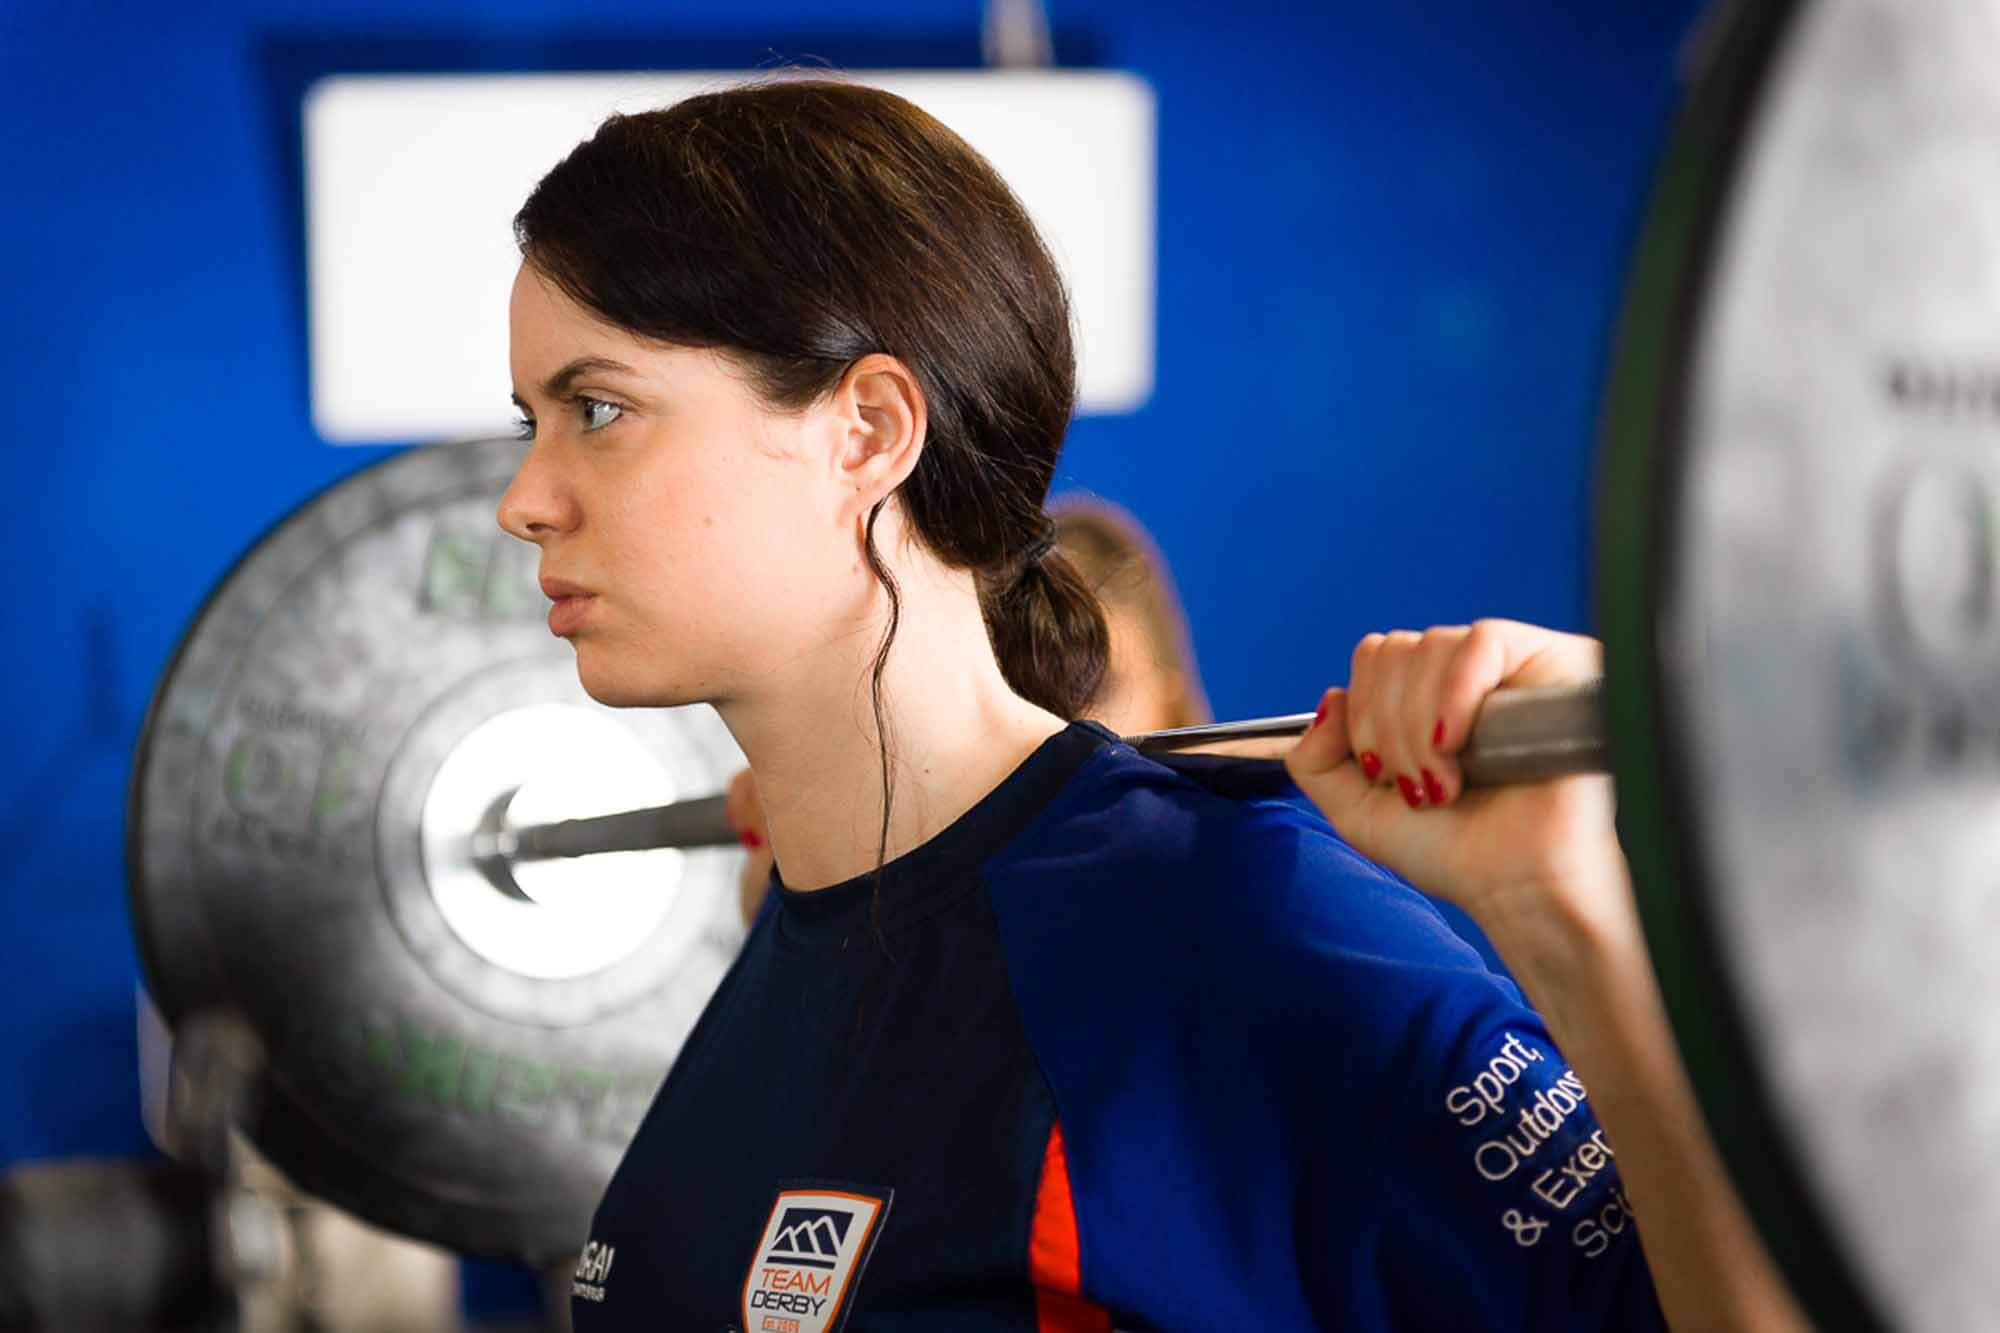 Female Sport and Exercise Science student lifting weights